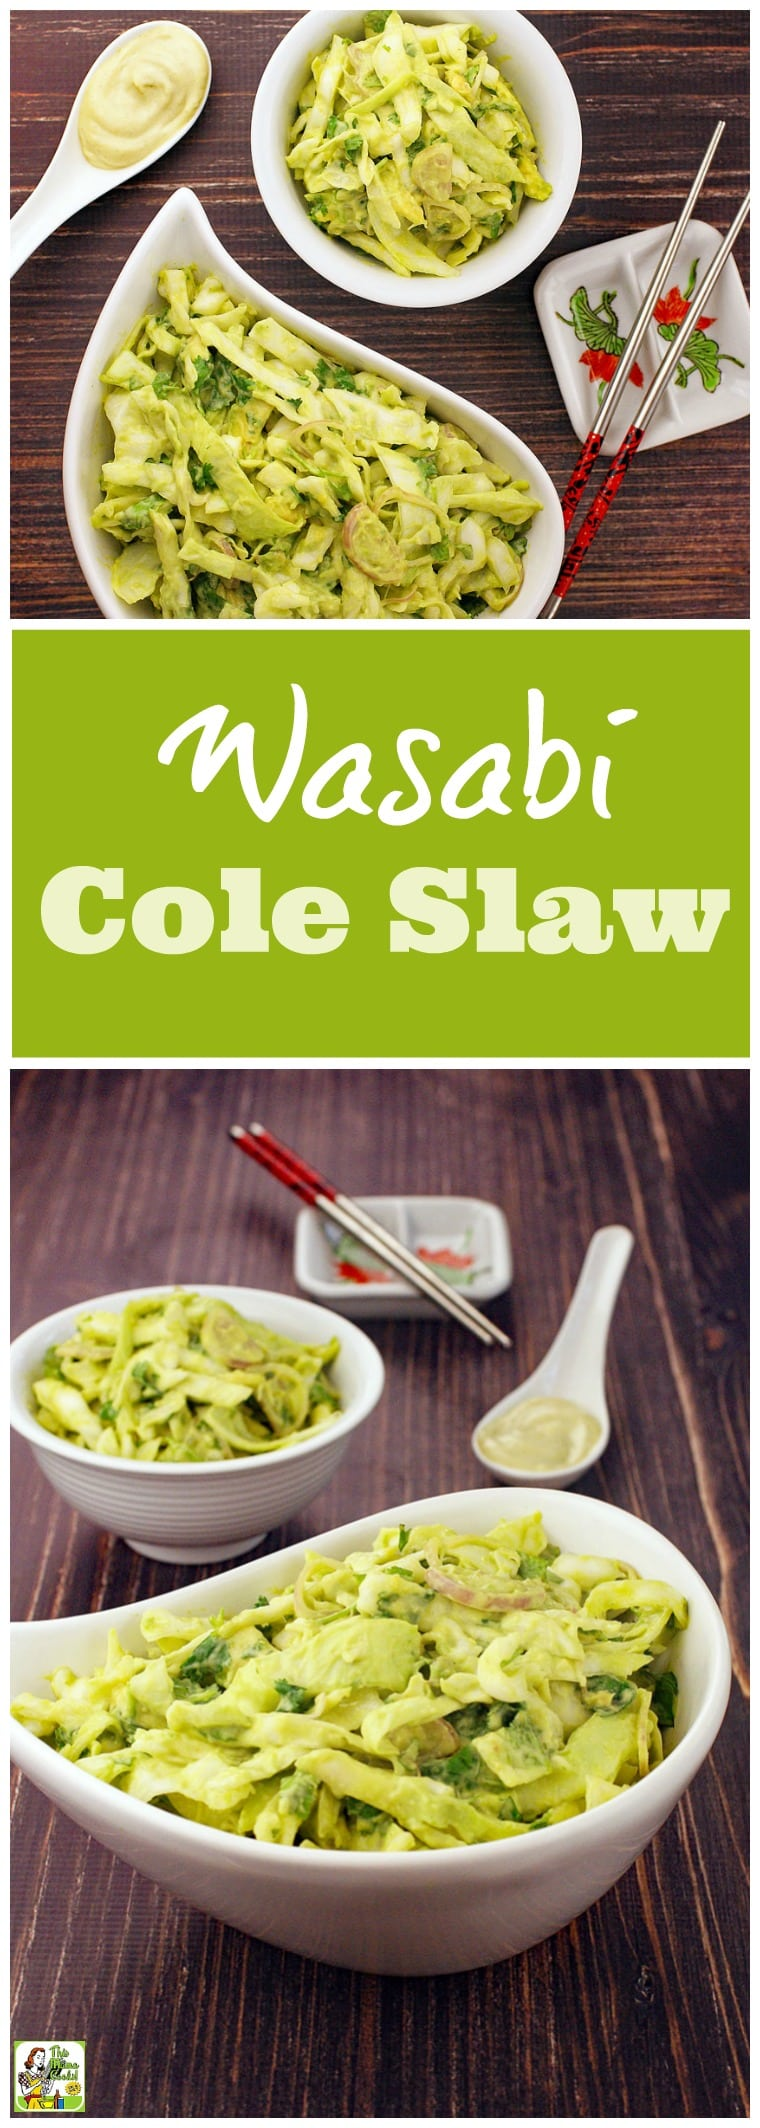 Tired of basic coleslaw recipes? Try this Wasabi Cole Slaw recipe! Click to get this Asian coleslaw recipe that\'s ideal for cookouts, potlucks and bbq parties. It\'s gluten free and comes with a vegan option. You\'ll love how this easy coleslaw recipe with avocado and wasabi mayo for summer!